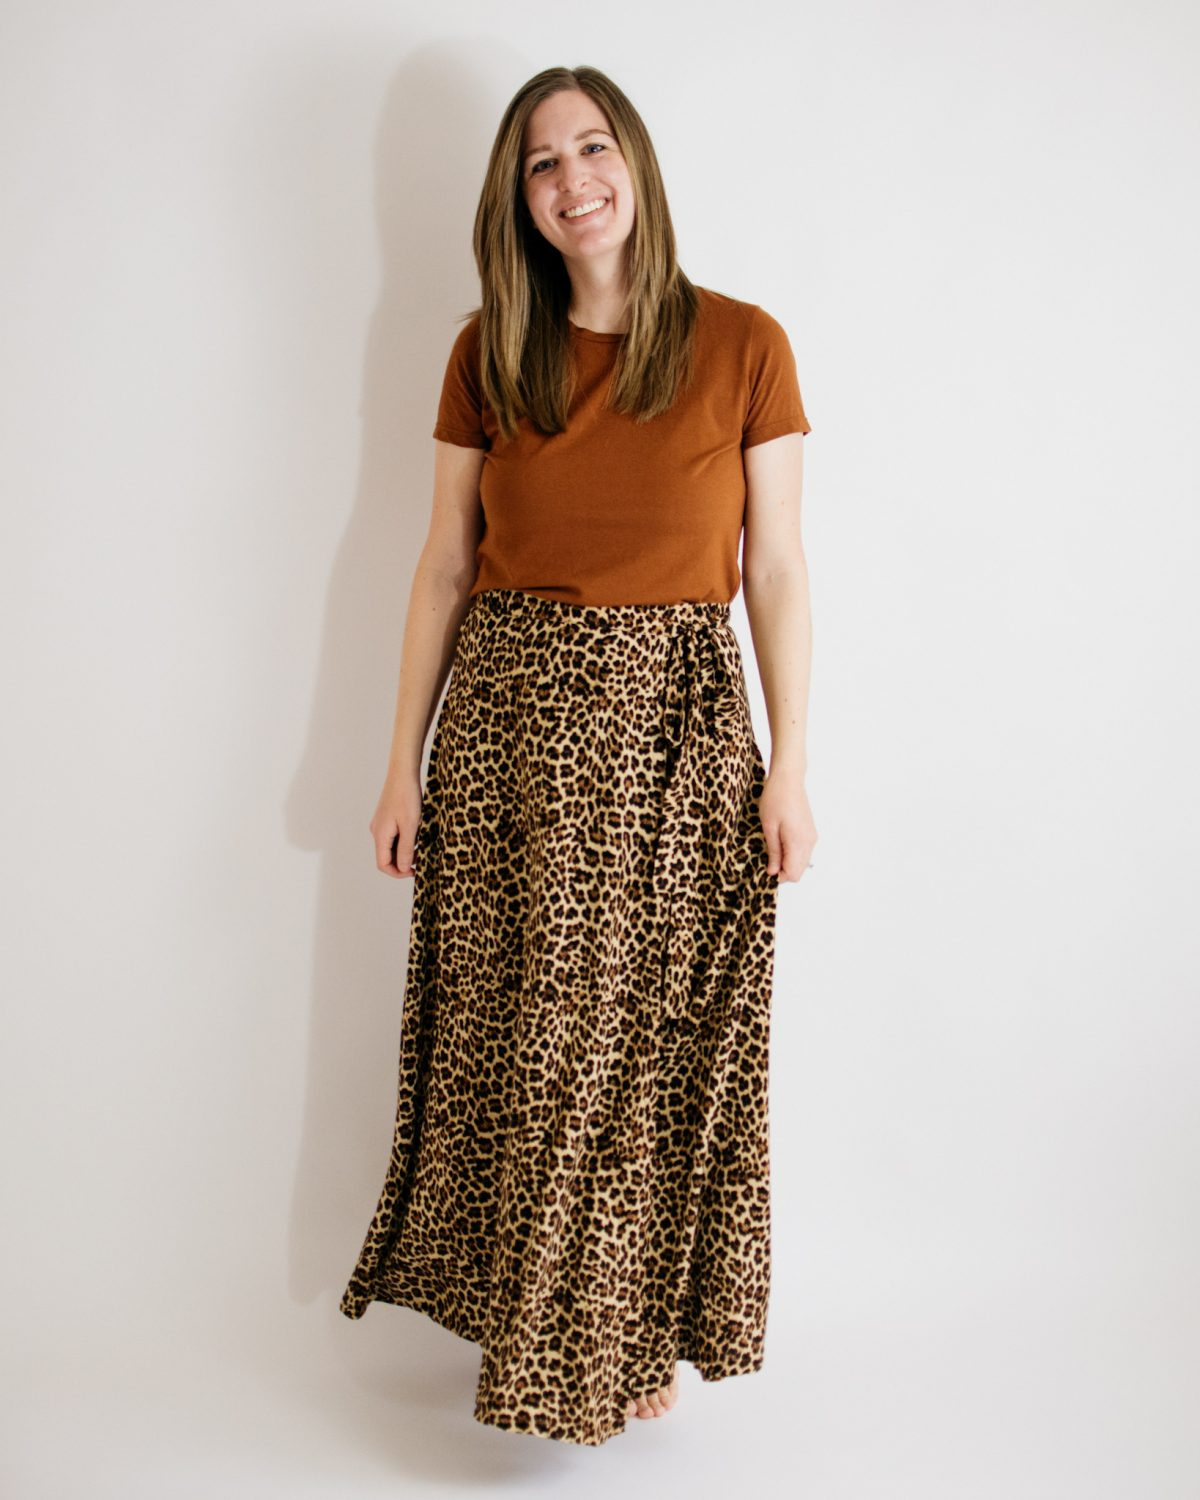 2020 Birthday Outfit: Panama Tee + Wrap Skirt